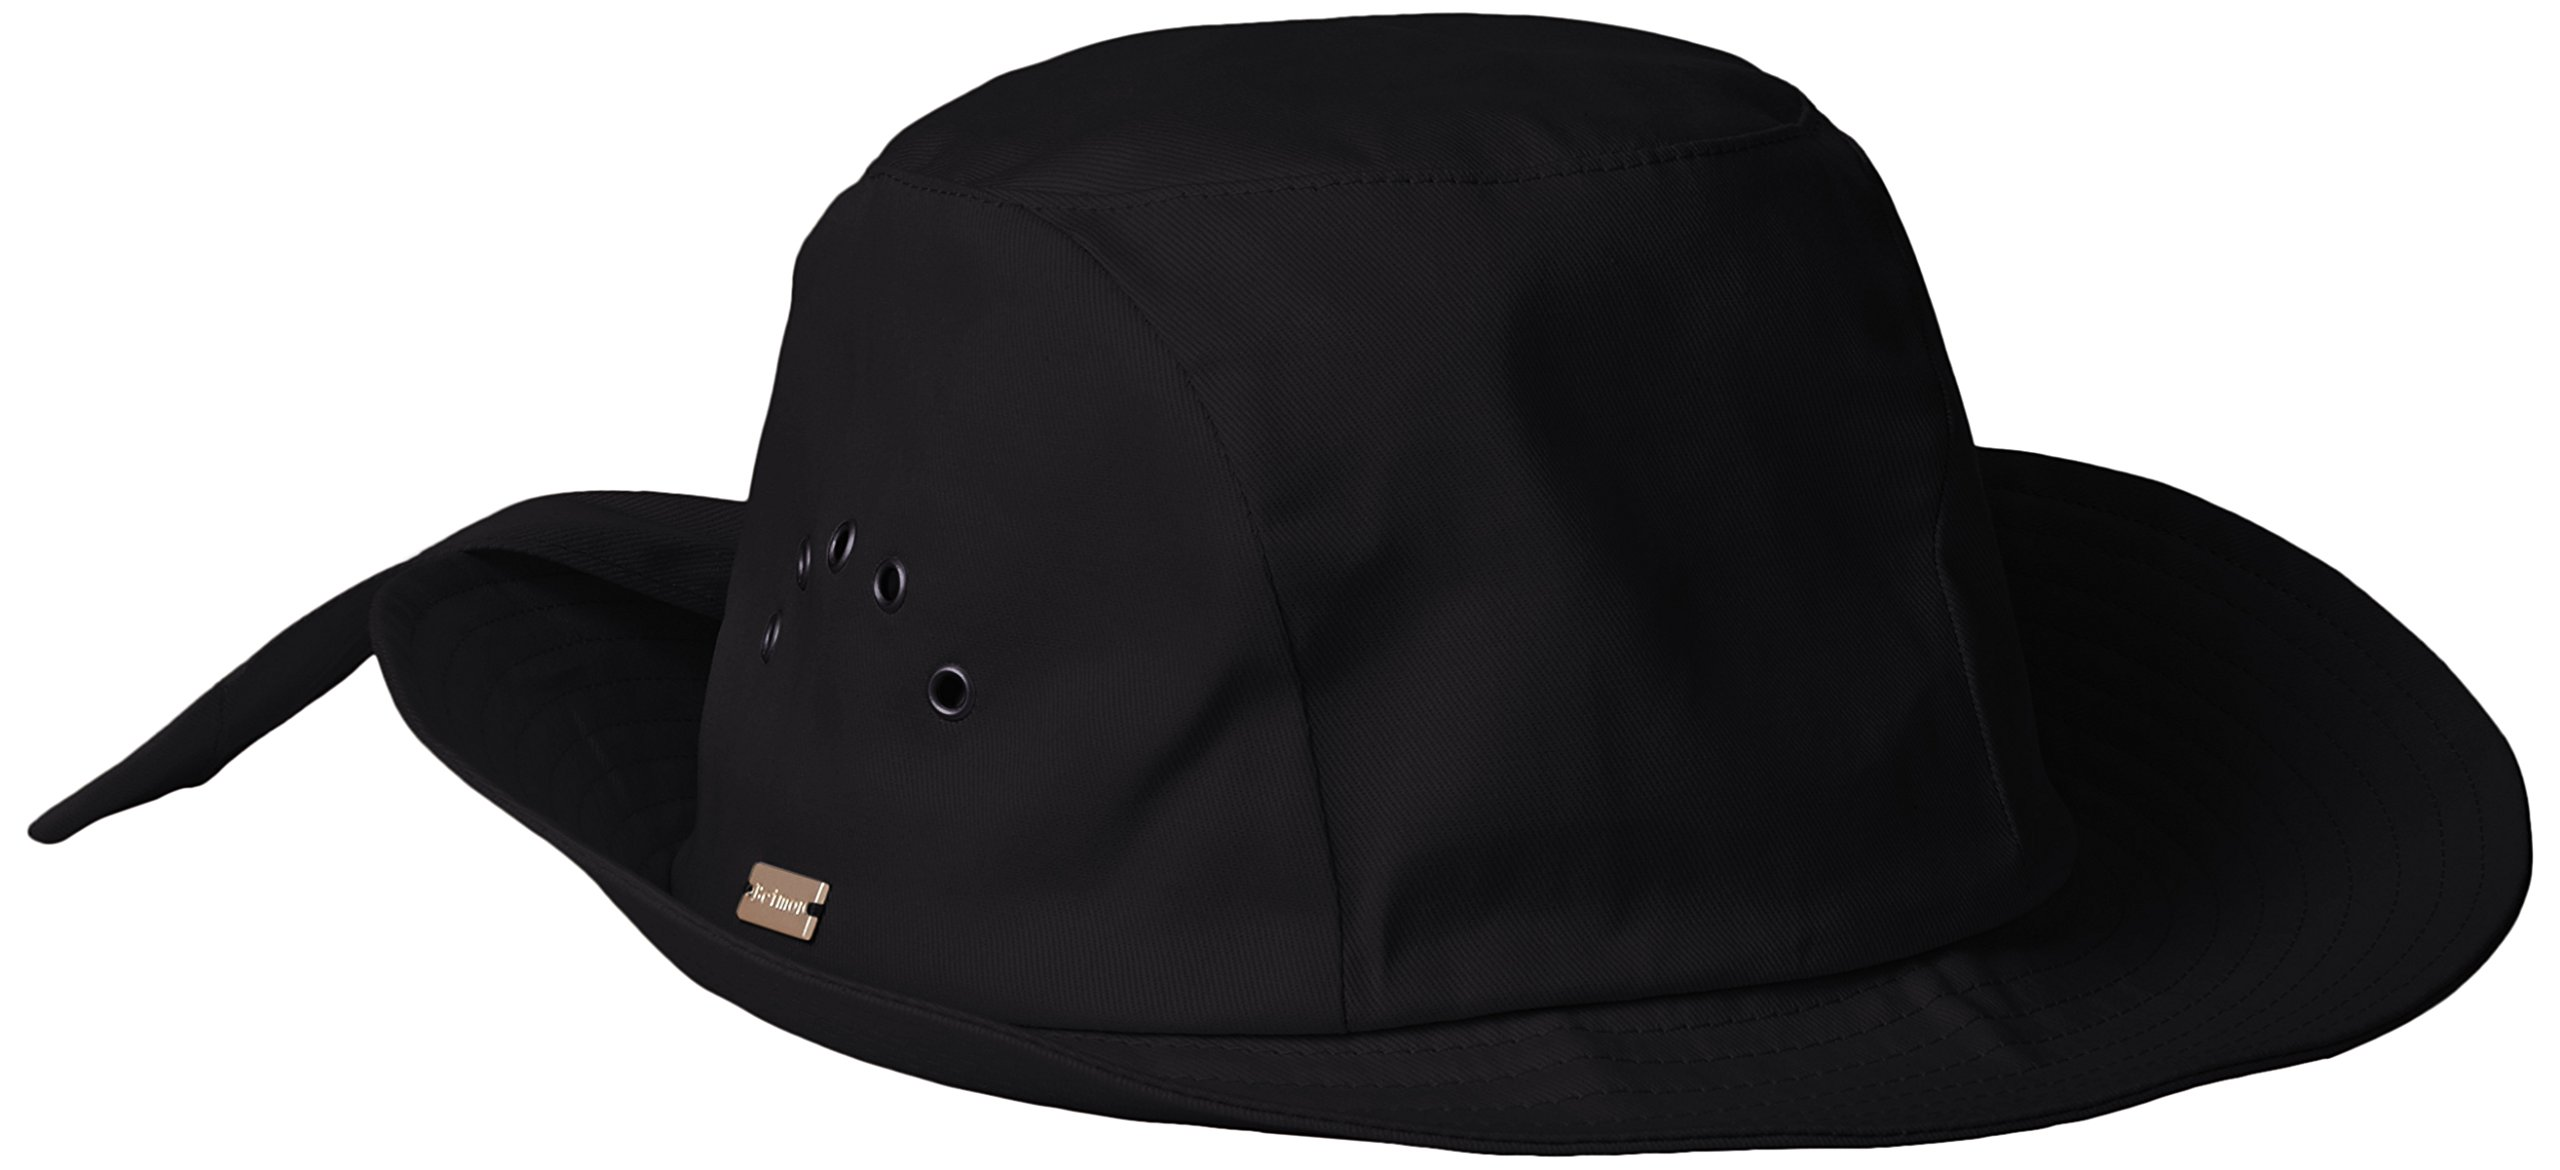 Betmar Knotted Cloche, Black, One Size Fits Most